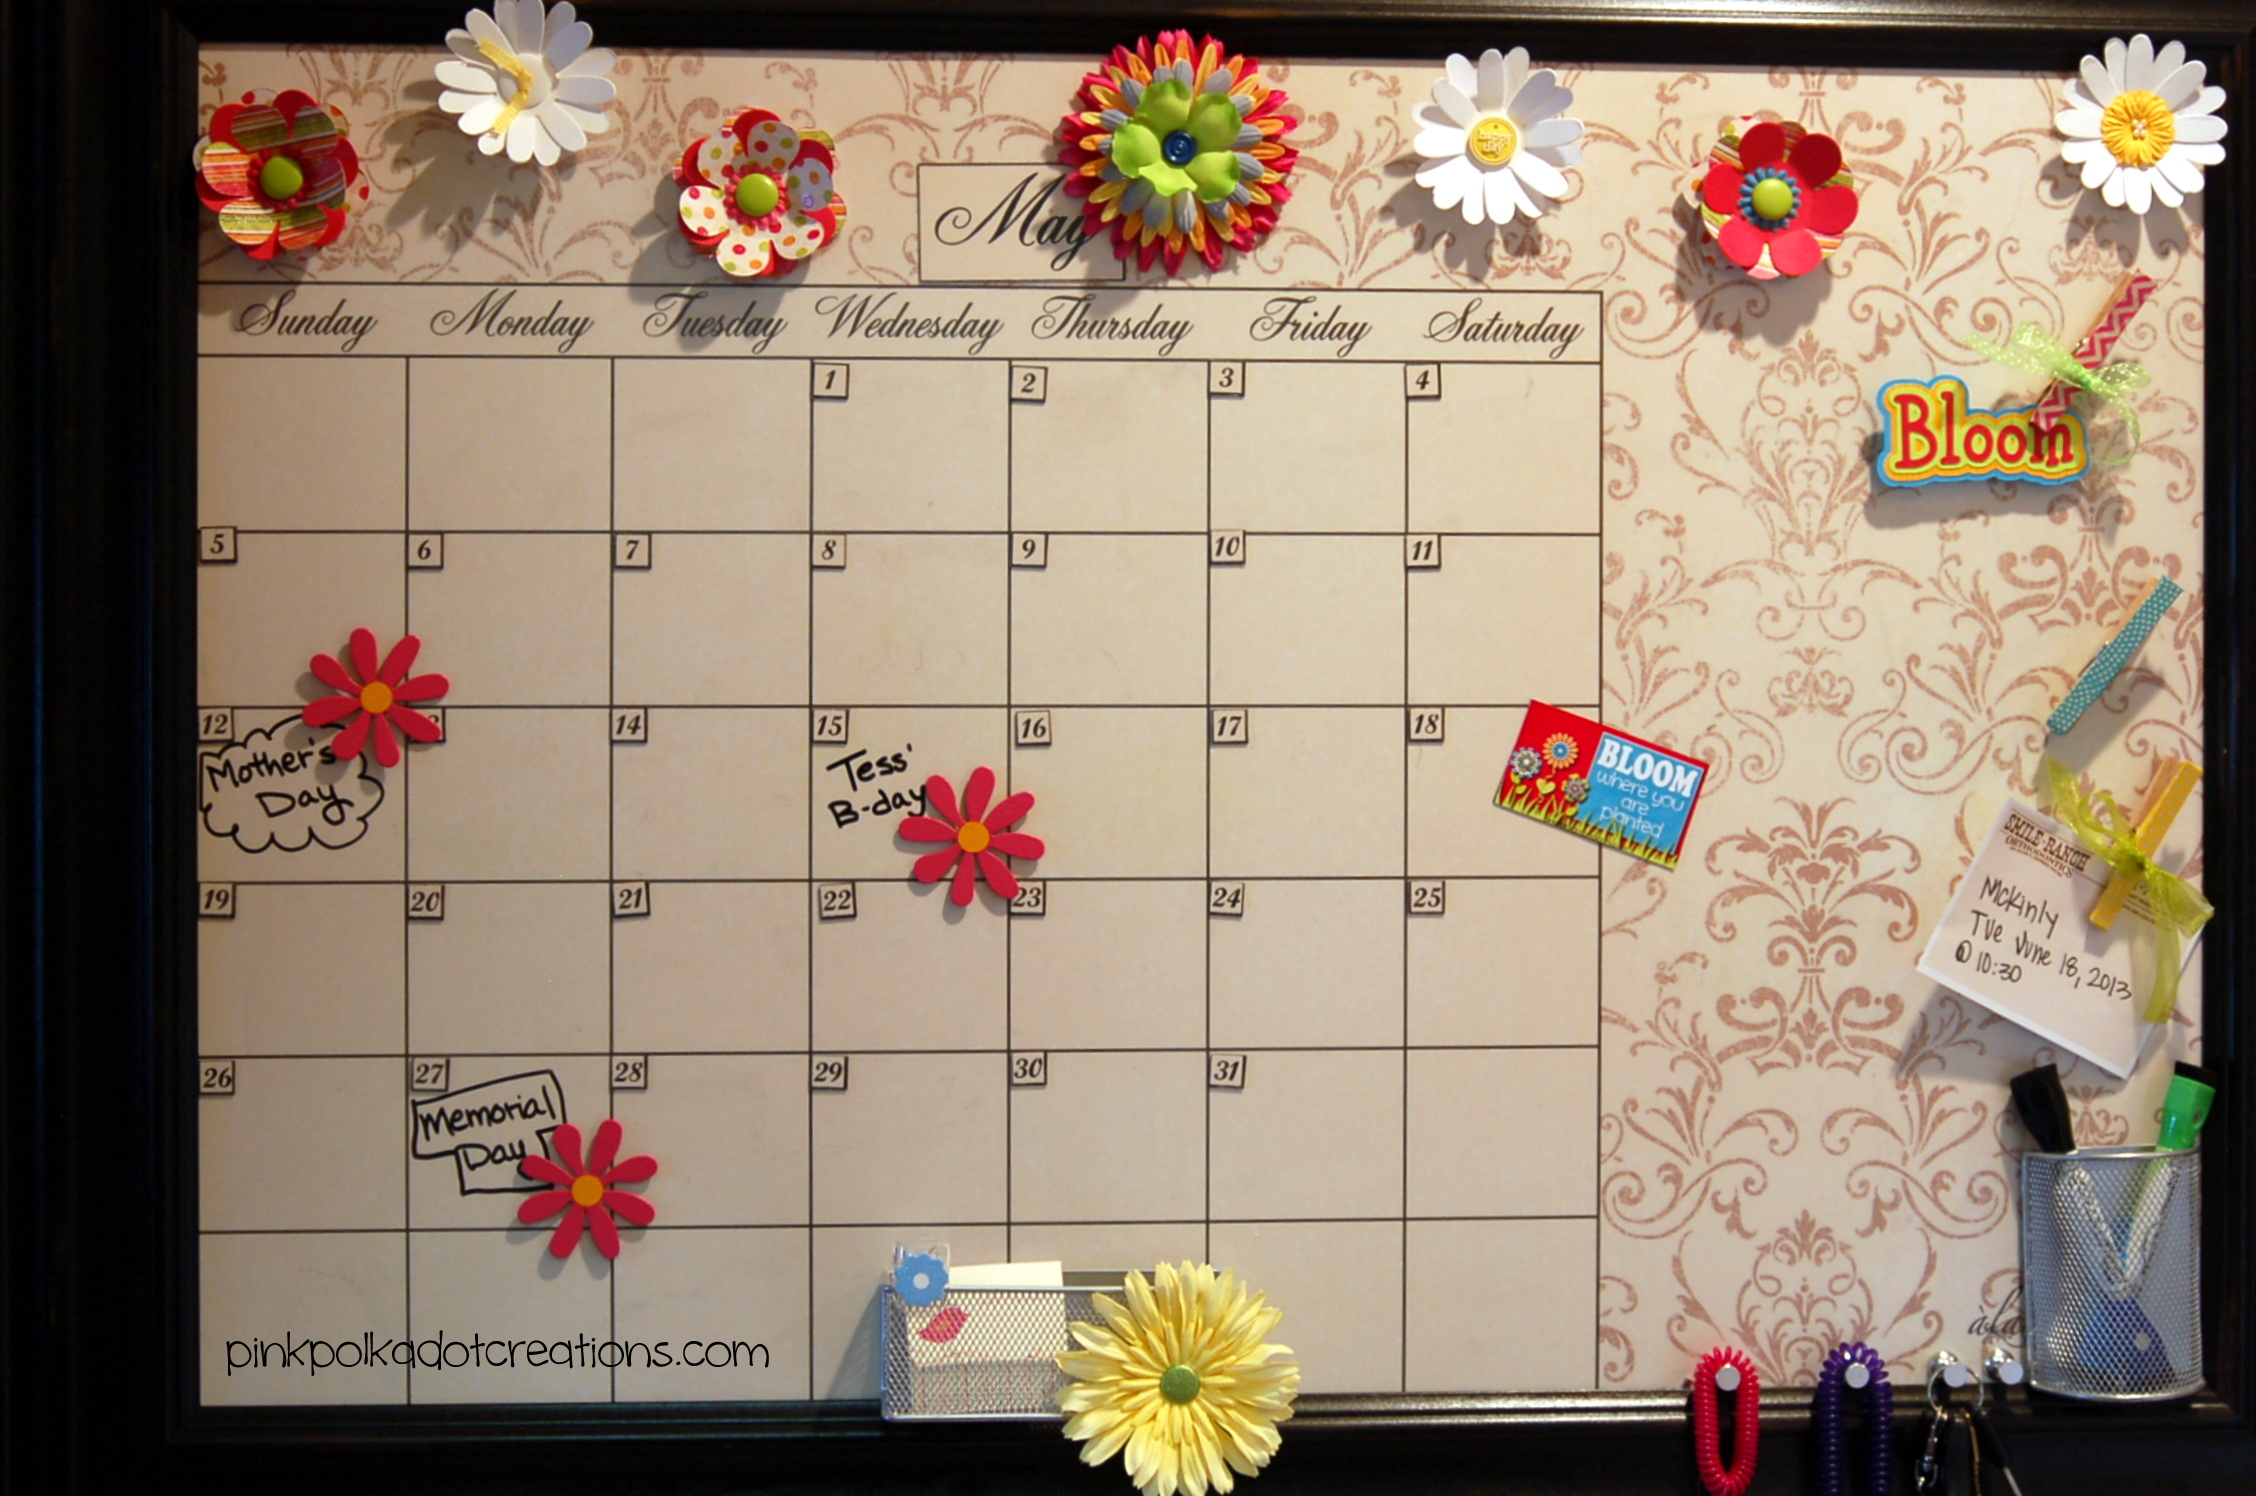 May Calendar Ideas : May calendar ideas pink polka dot creations